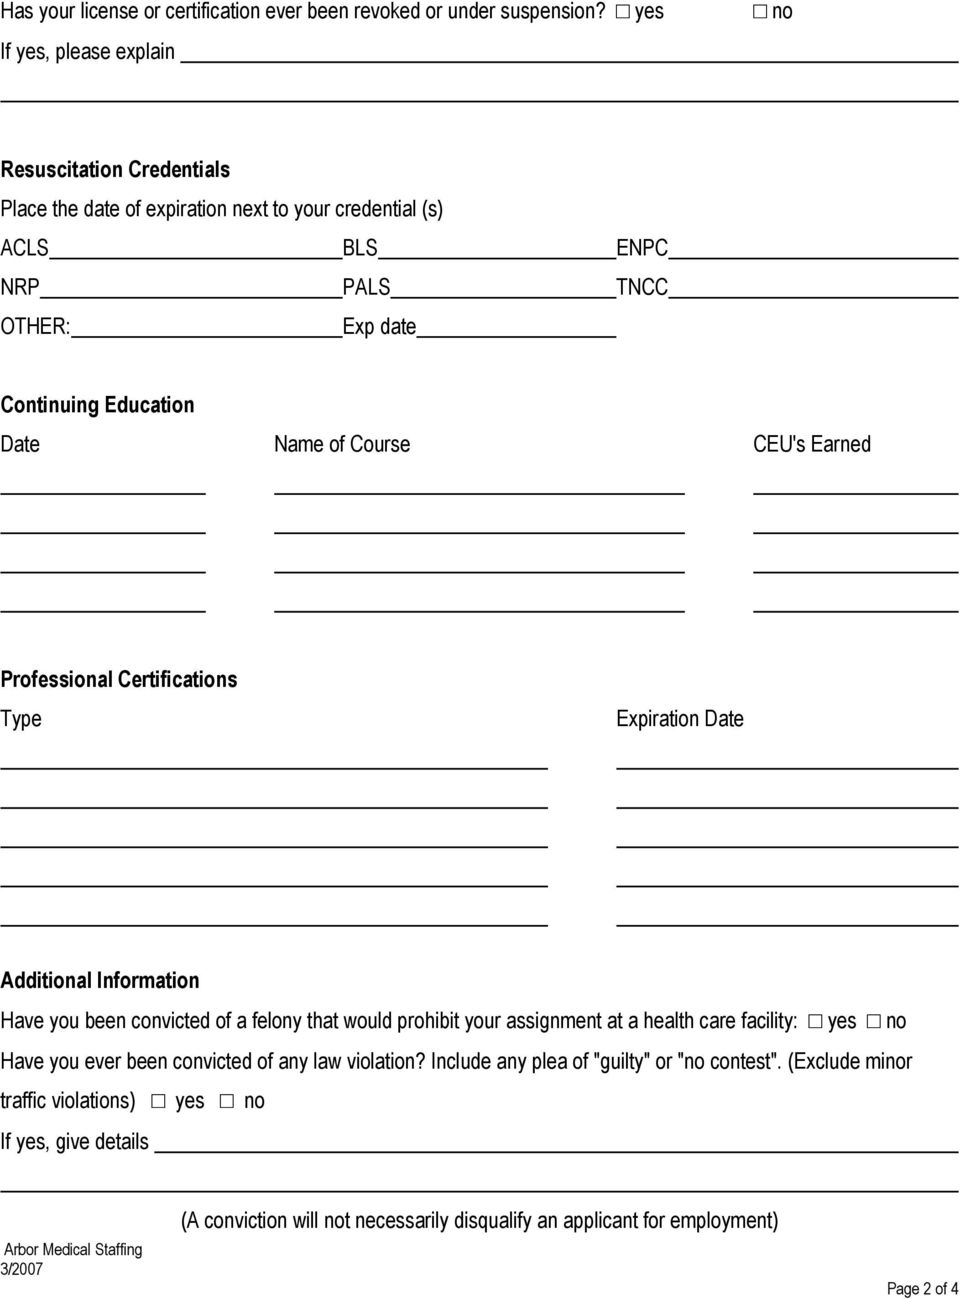 Arbor Medical Staffing Application  Education Name and